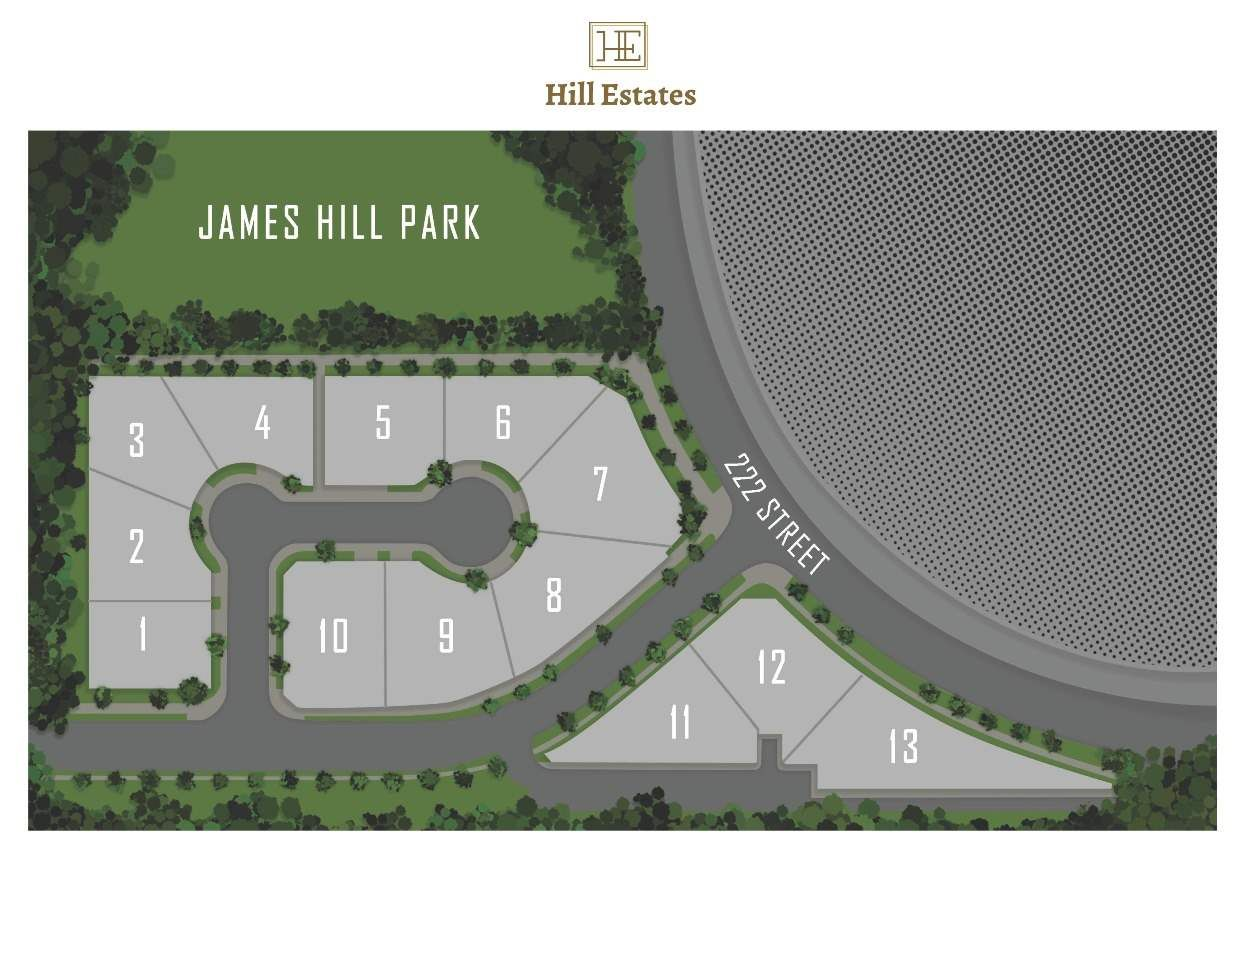 """Main Photo: Lot 1 4467 222 Street in Langley: Murrayville Land for sale in """"Hill Estates"""" : MLS®# R2553779"""